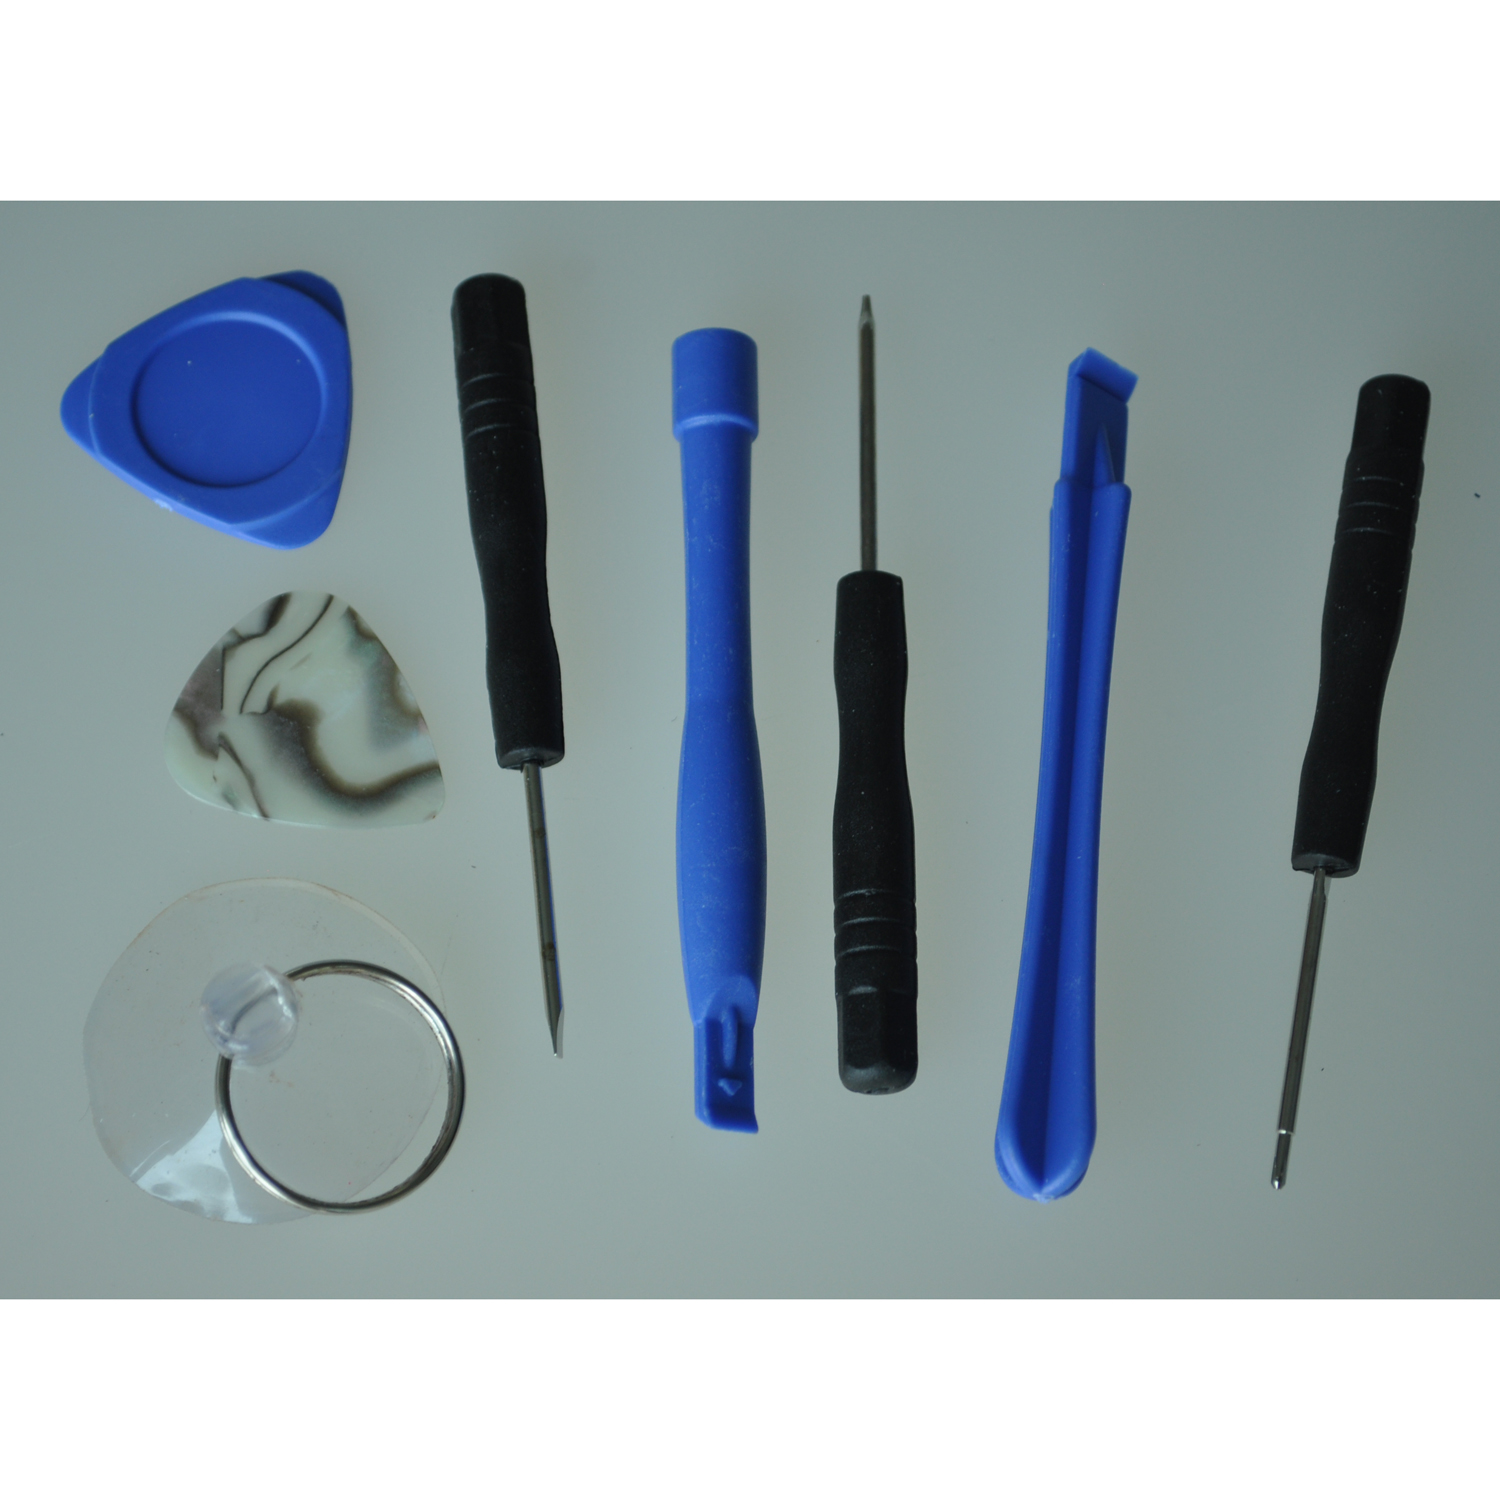 iphone tool kit removal tool kit screwdriver for iphone 3gs 3g iphone 4 12397